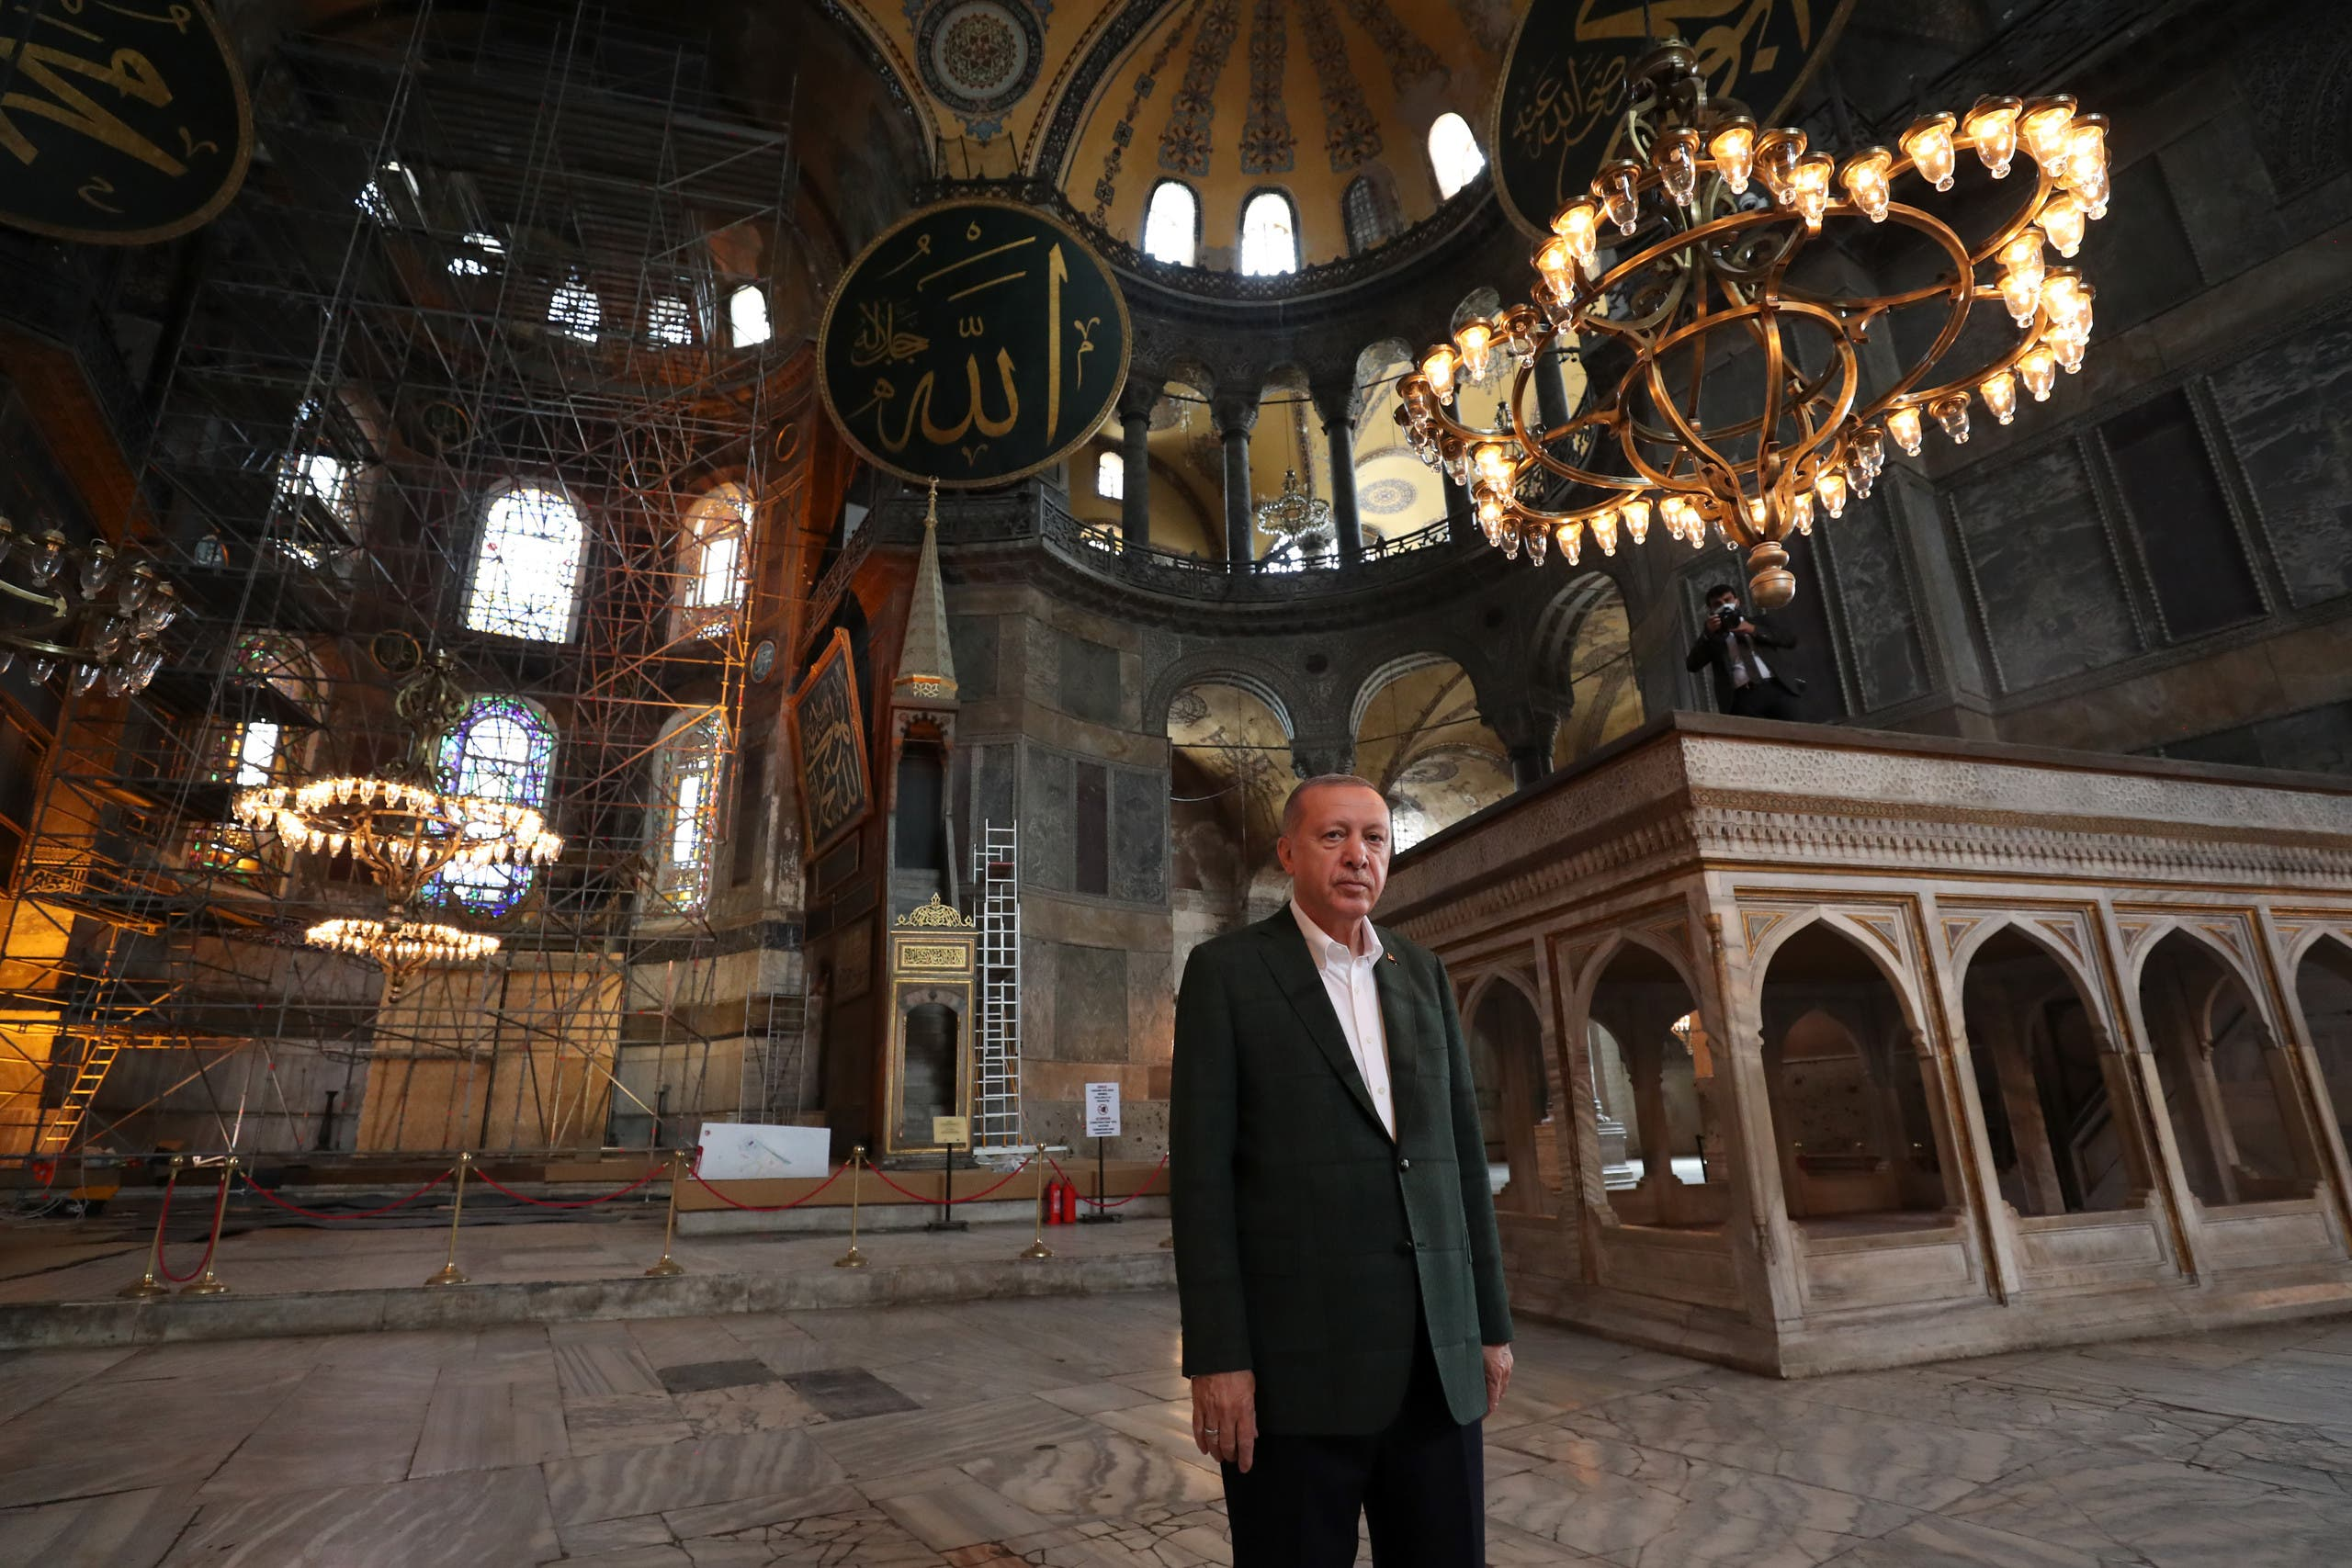 Turkish President Recep Tayyip Erdogan visiting Hagia Sophia monument in Istanbul, on July 19, 2020. (AFP)